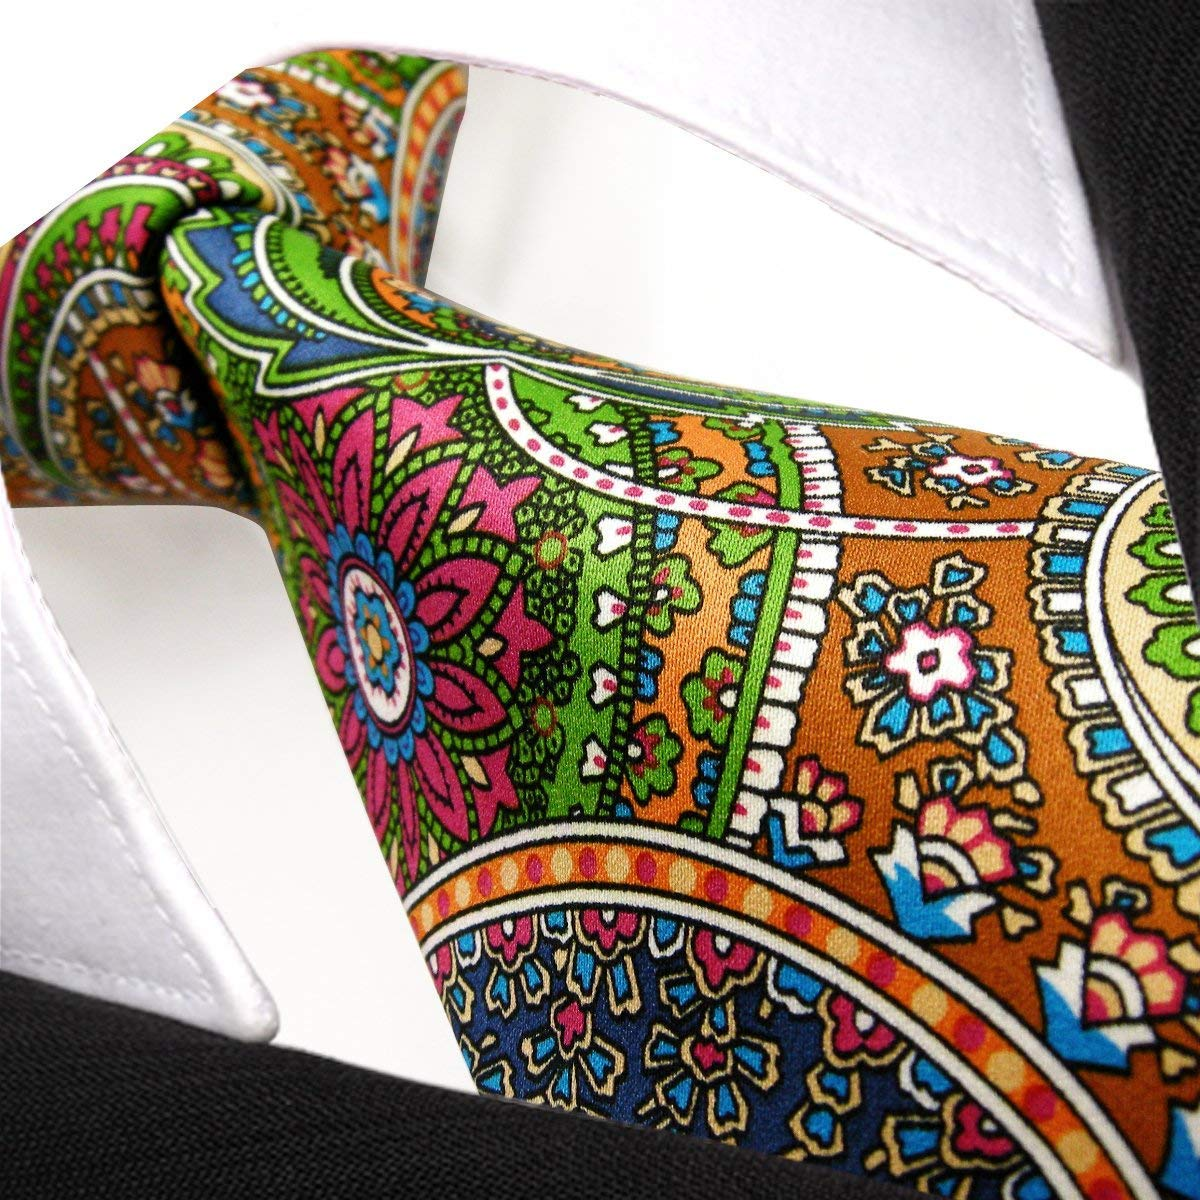 59dd906272f0 Shlax&Wing Mens Ties Neckties Paisley Multicolor Red Green Yellow Silk  Handmade Shlax & Wing I16 larger image